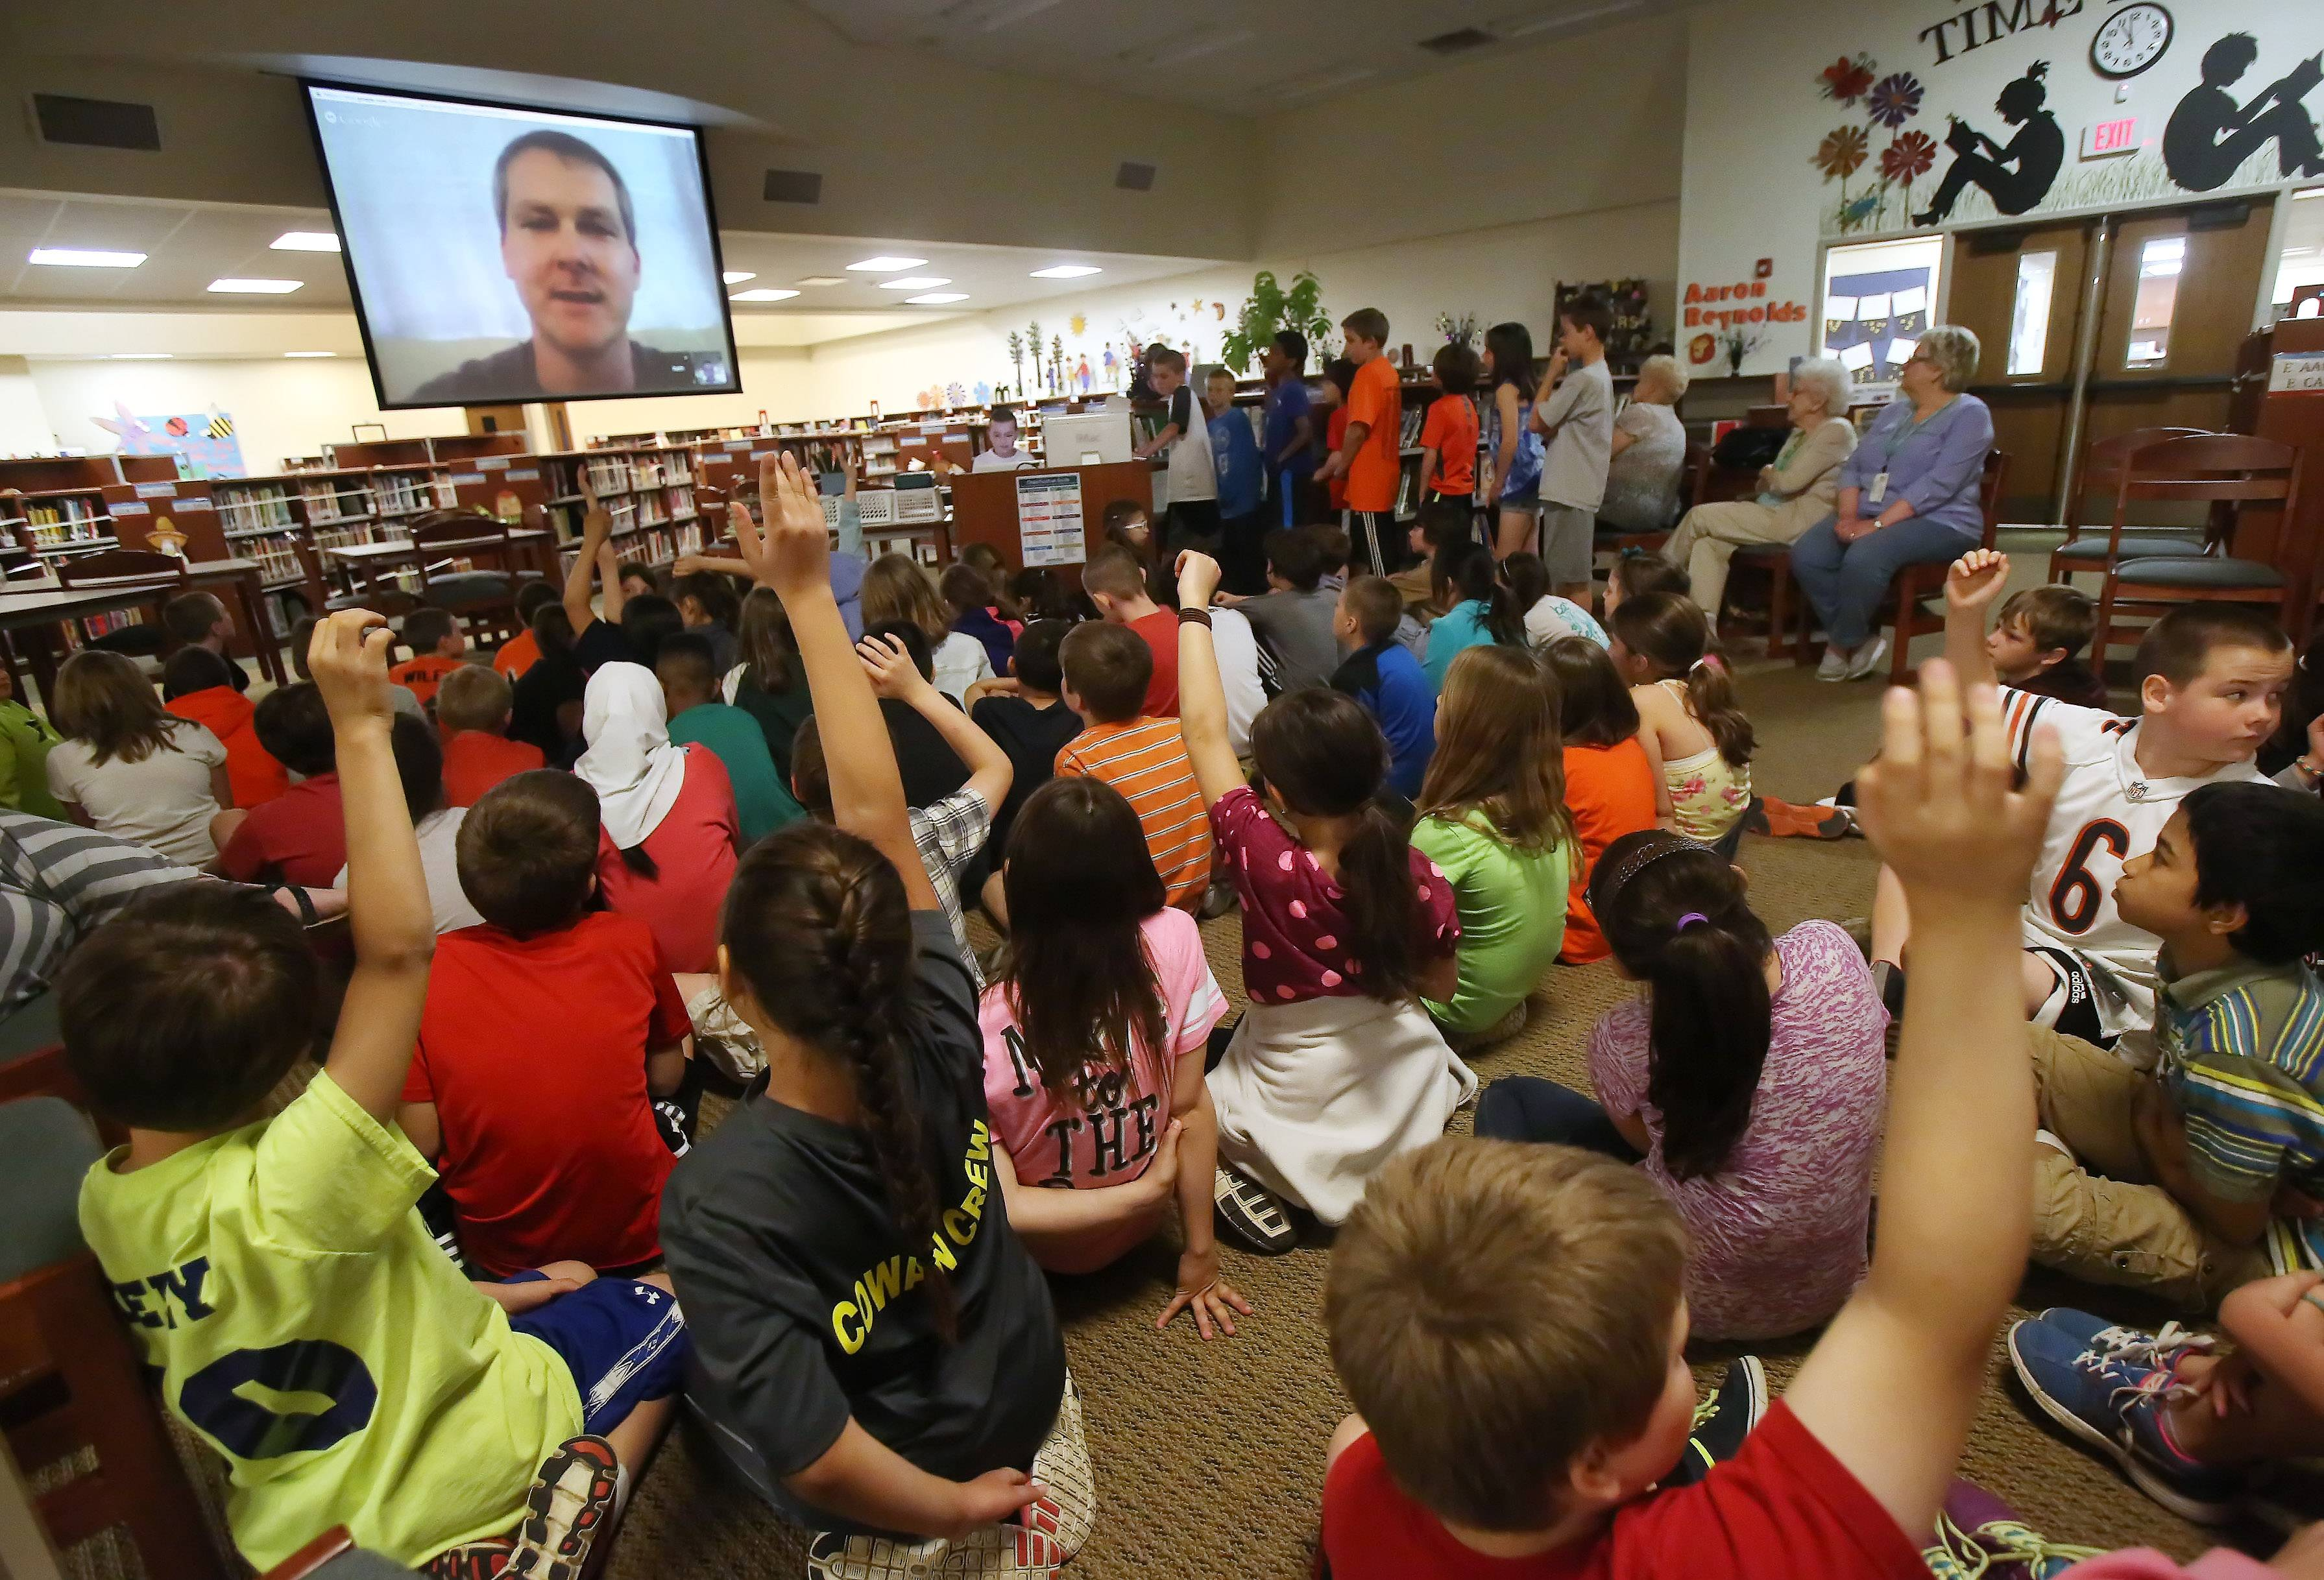 Fourth grade students participate in a video chat with marine biologist Keith Fischer Monday in the learning center at Butterfield School in Libertyville. Fischer, who works with the Fish and Wildlife Institute in St. Petersburg, Fla., discussed ecosystems with the students.